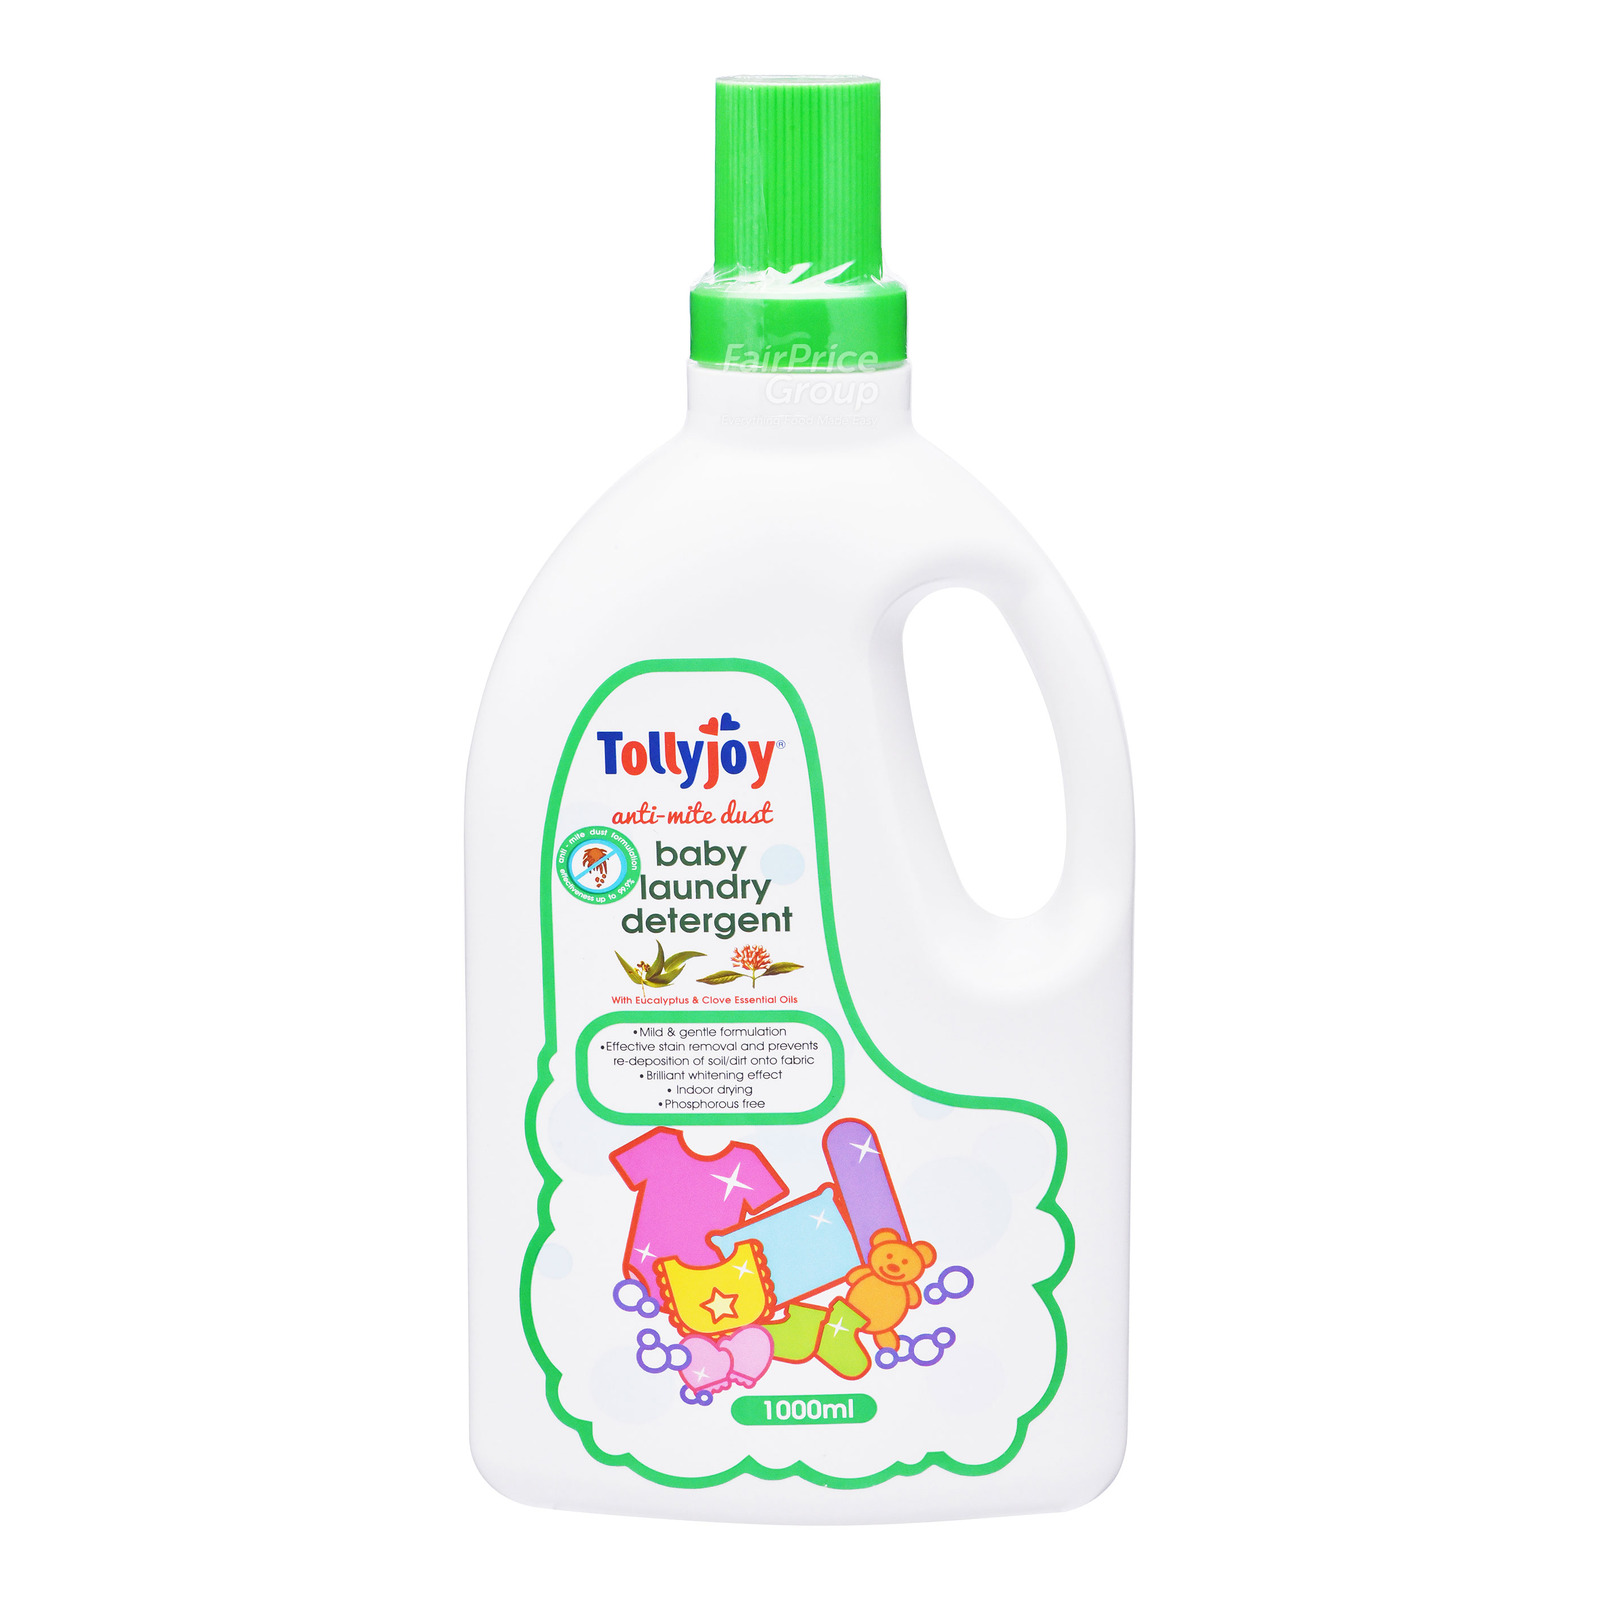 Tollyjoy Baby Laundry Detergent - Anti-Mite Dust